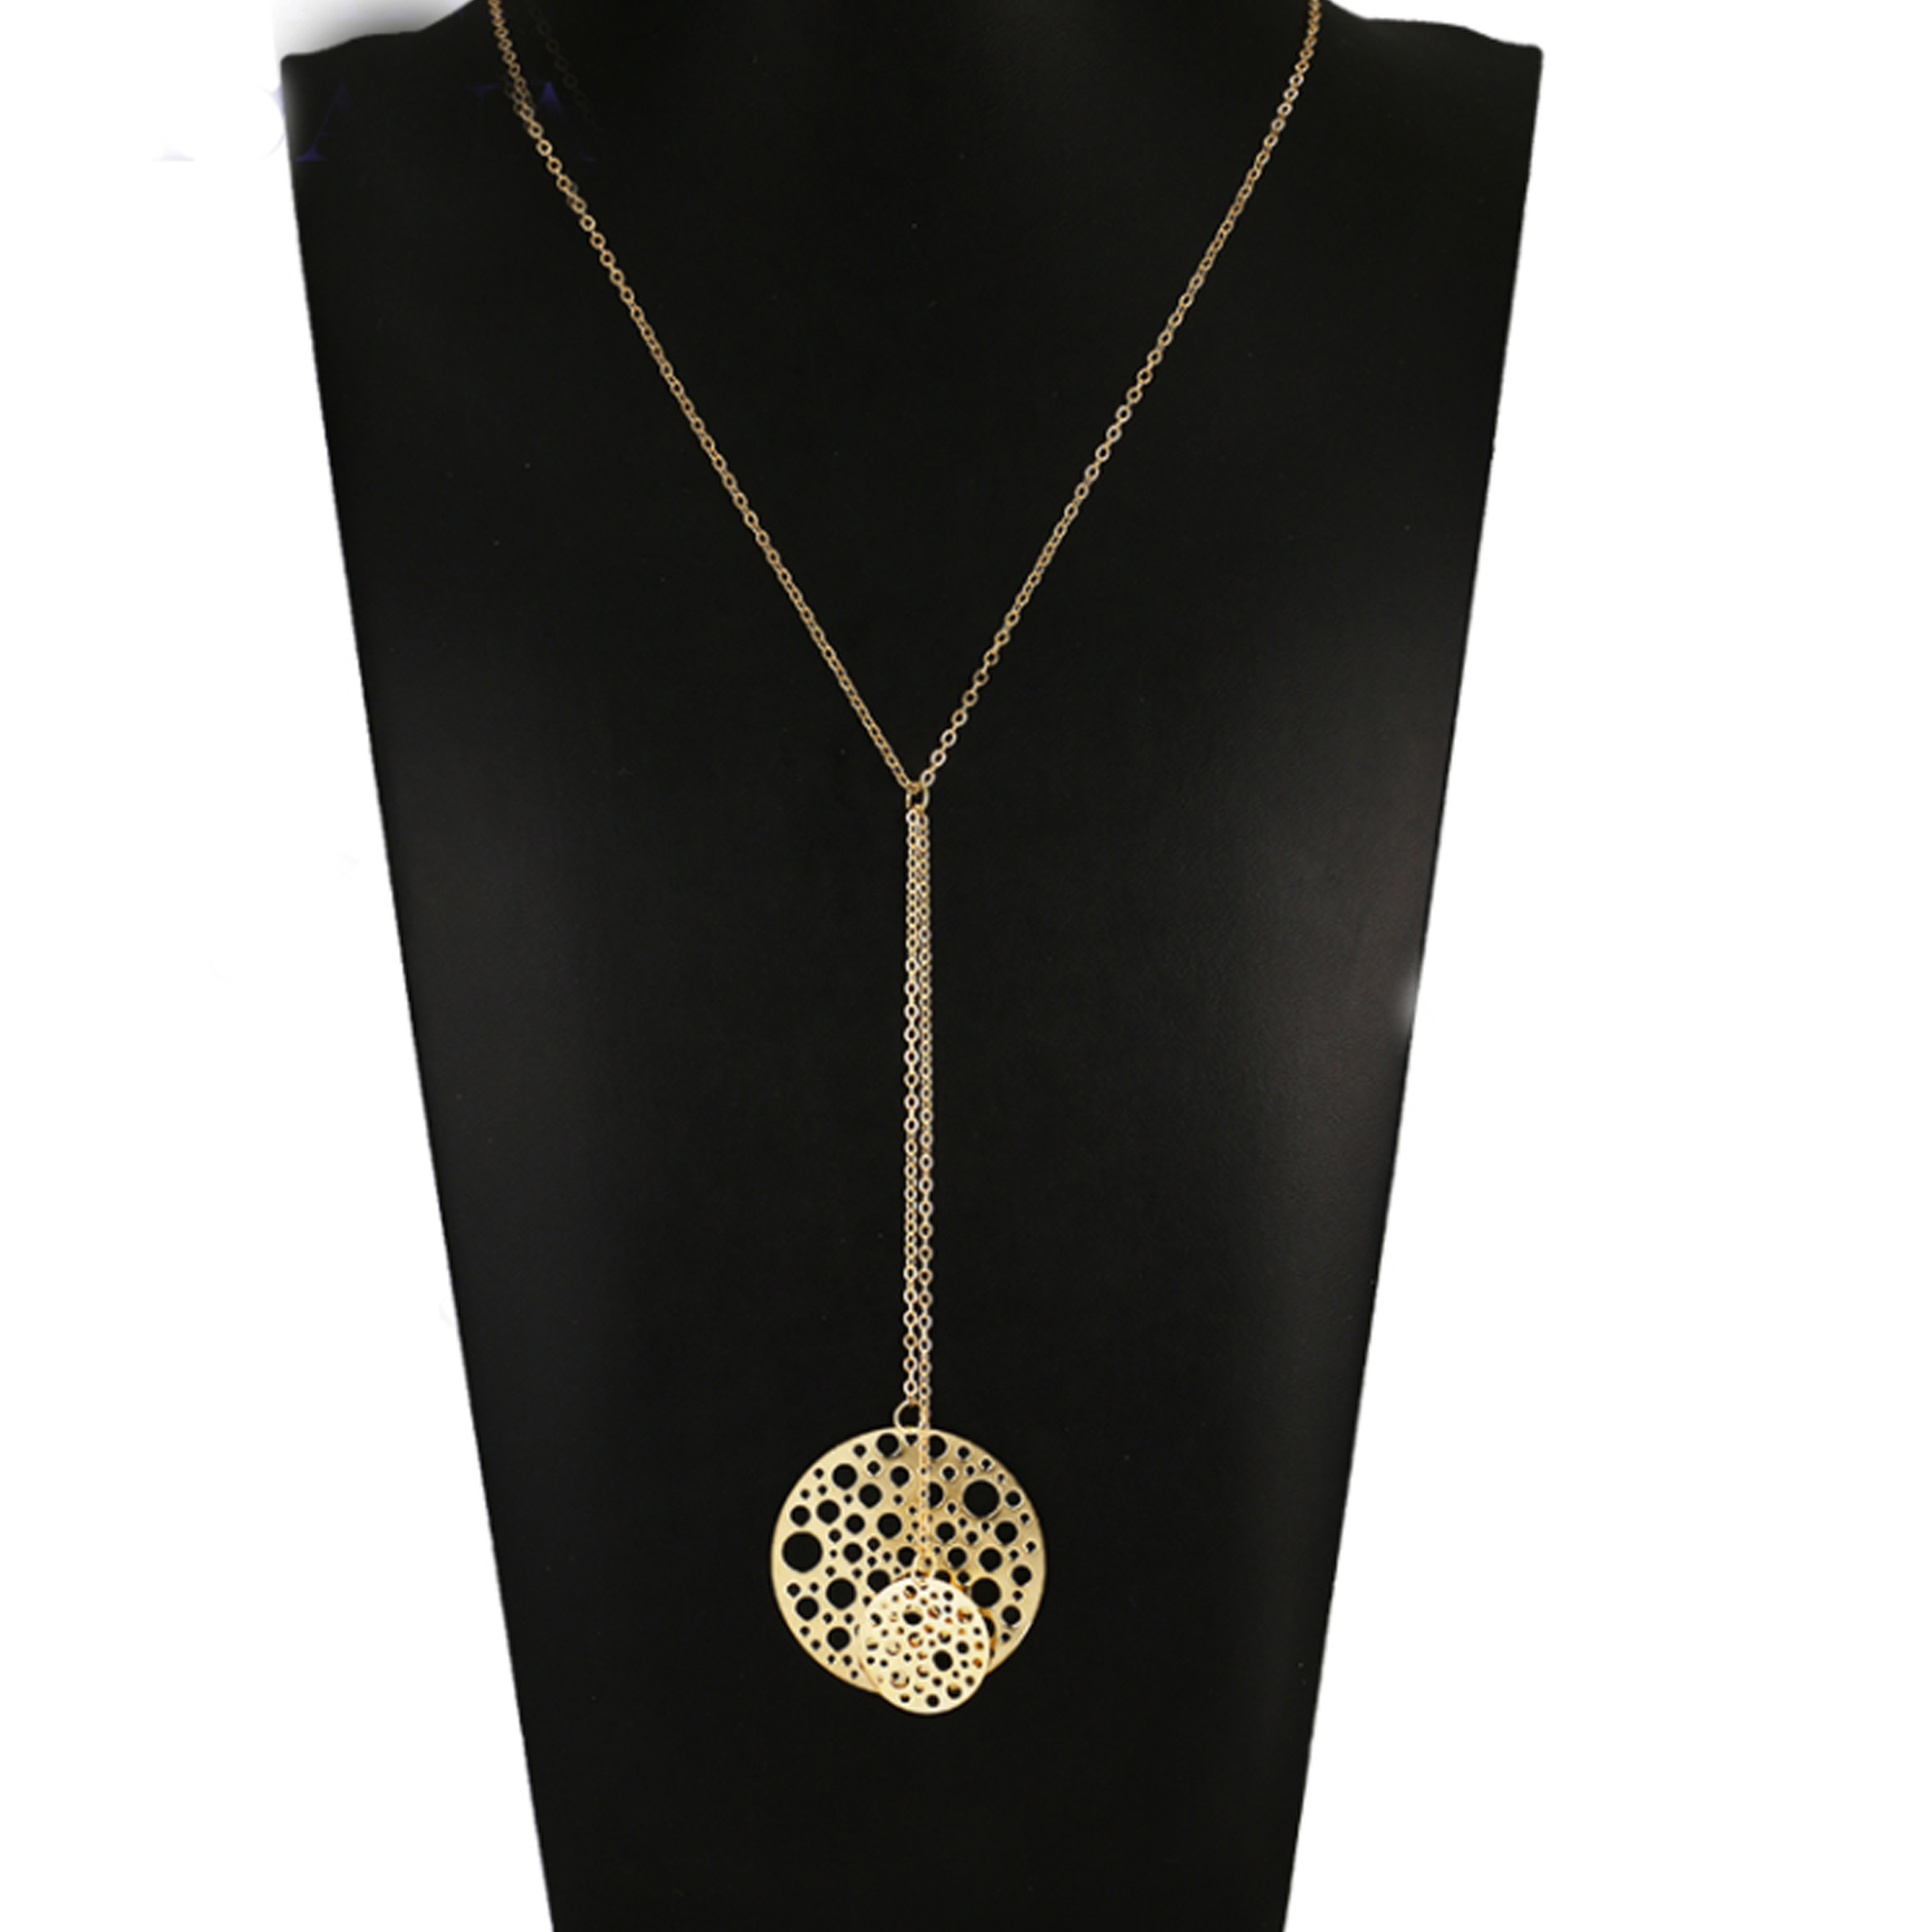 lanvin fwrd knotted in necklace chain pendant chains image jewelry gold of product lanv